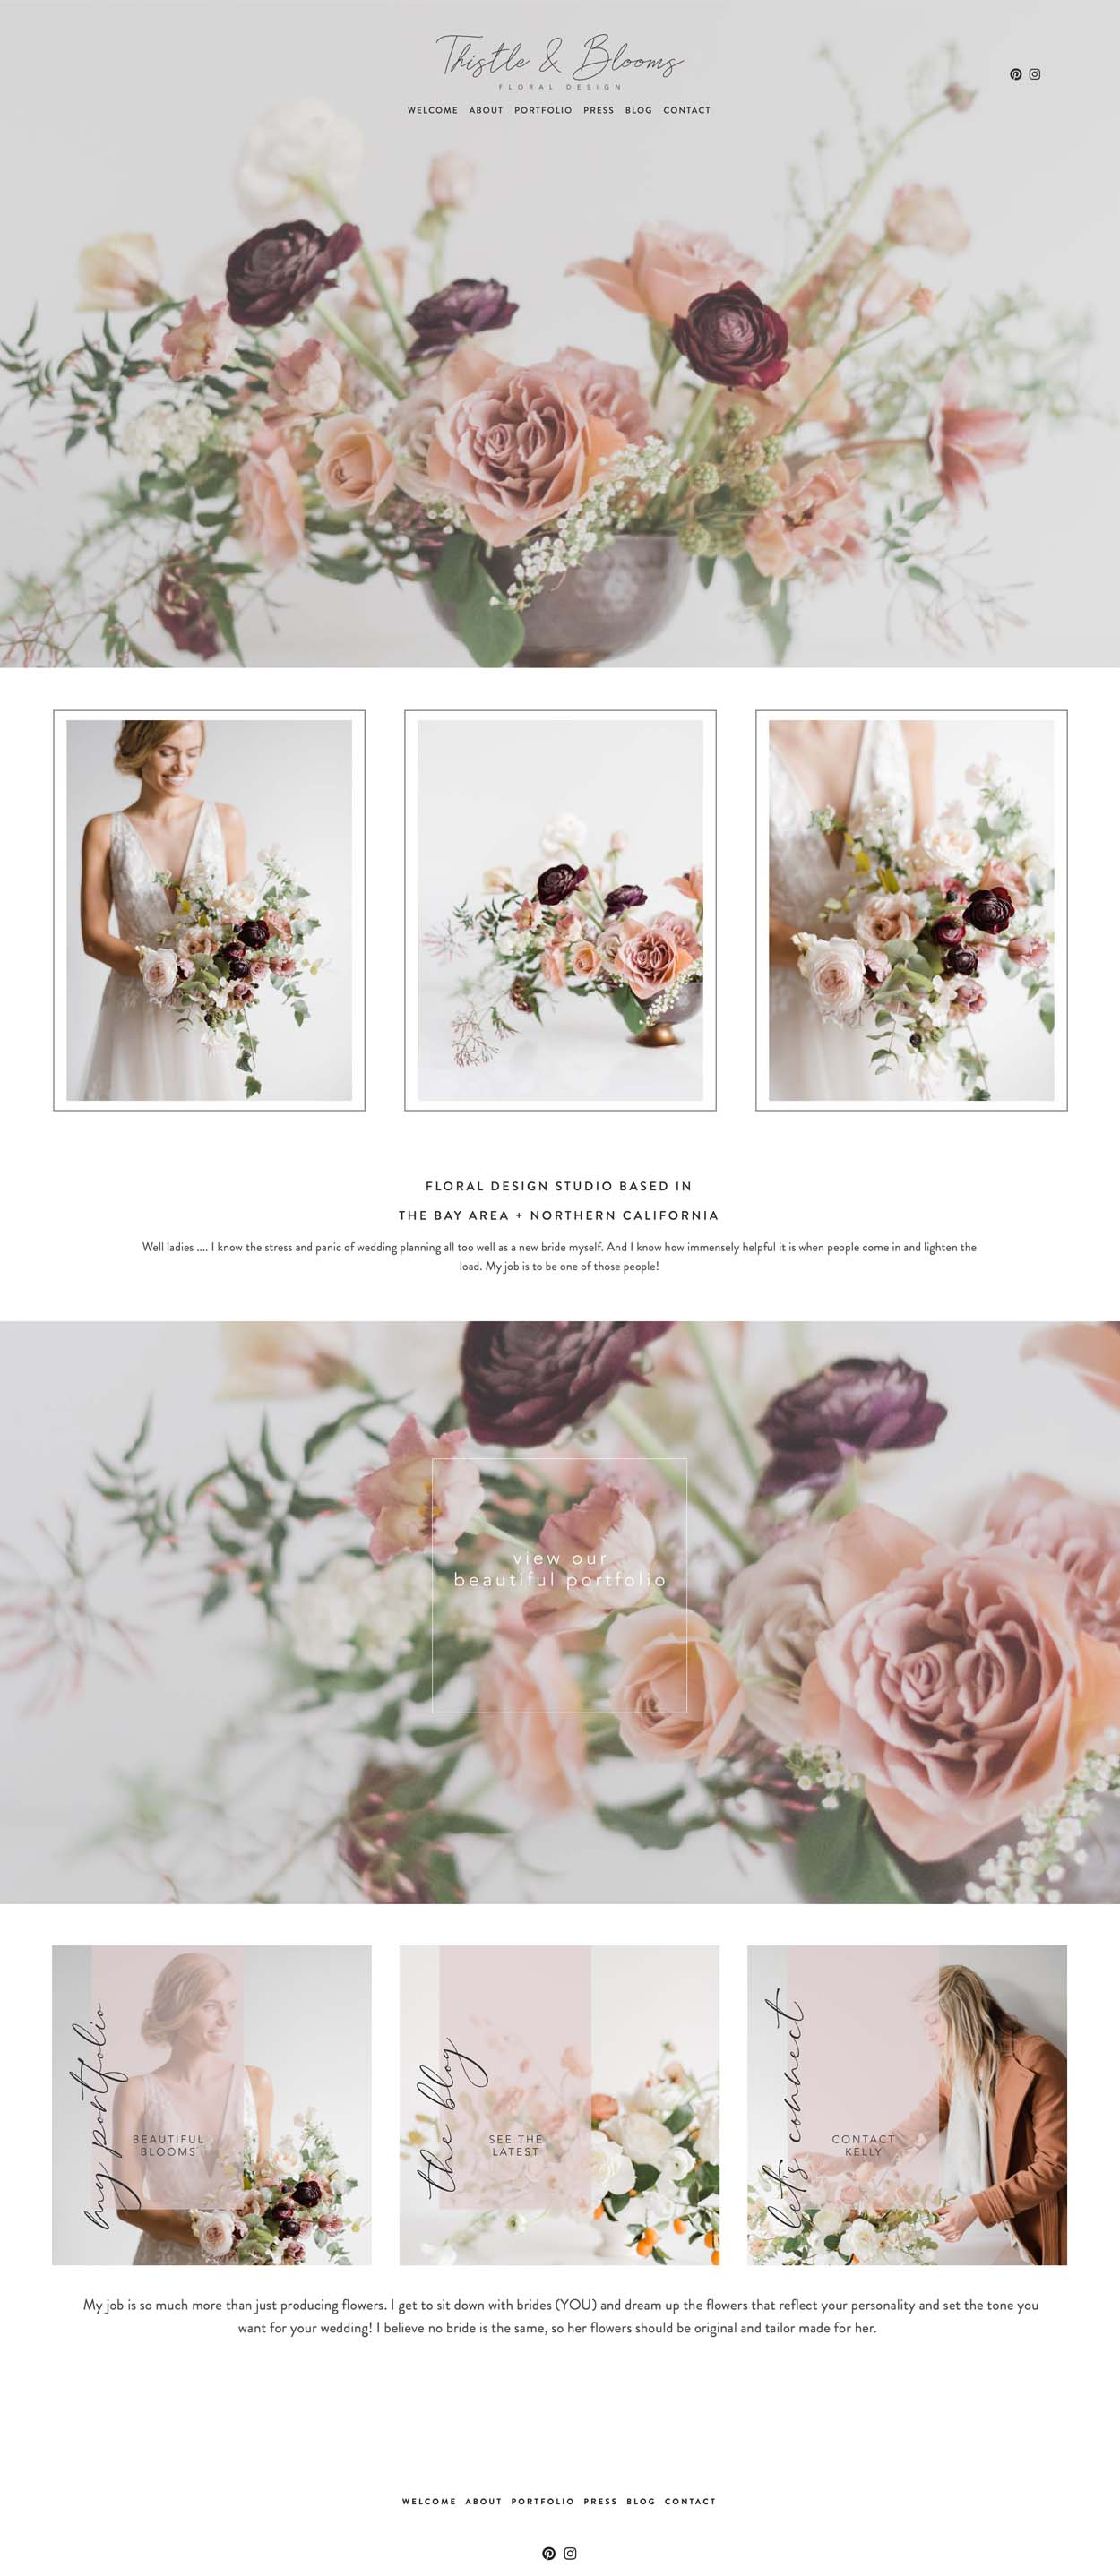 Squarespace Website Designer | Wedding and Event Florist in Northern California | Web Design For Thistle and Blooms | The Windsor Template by The Editor's Touch